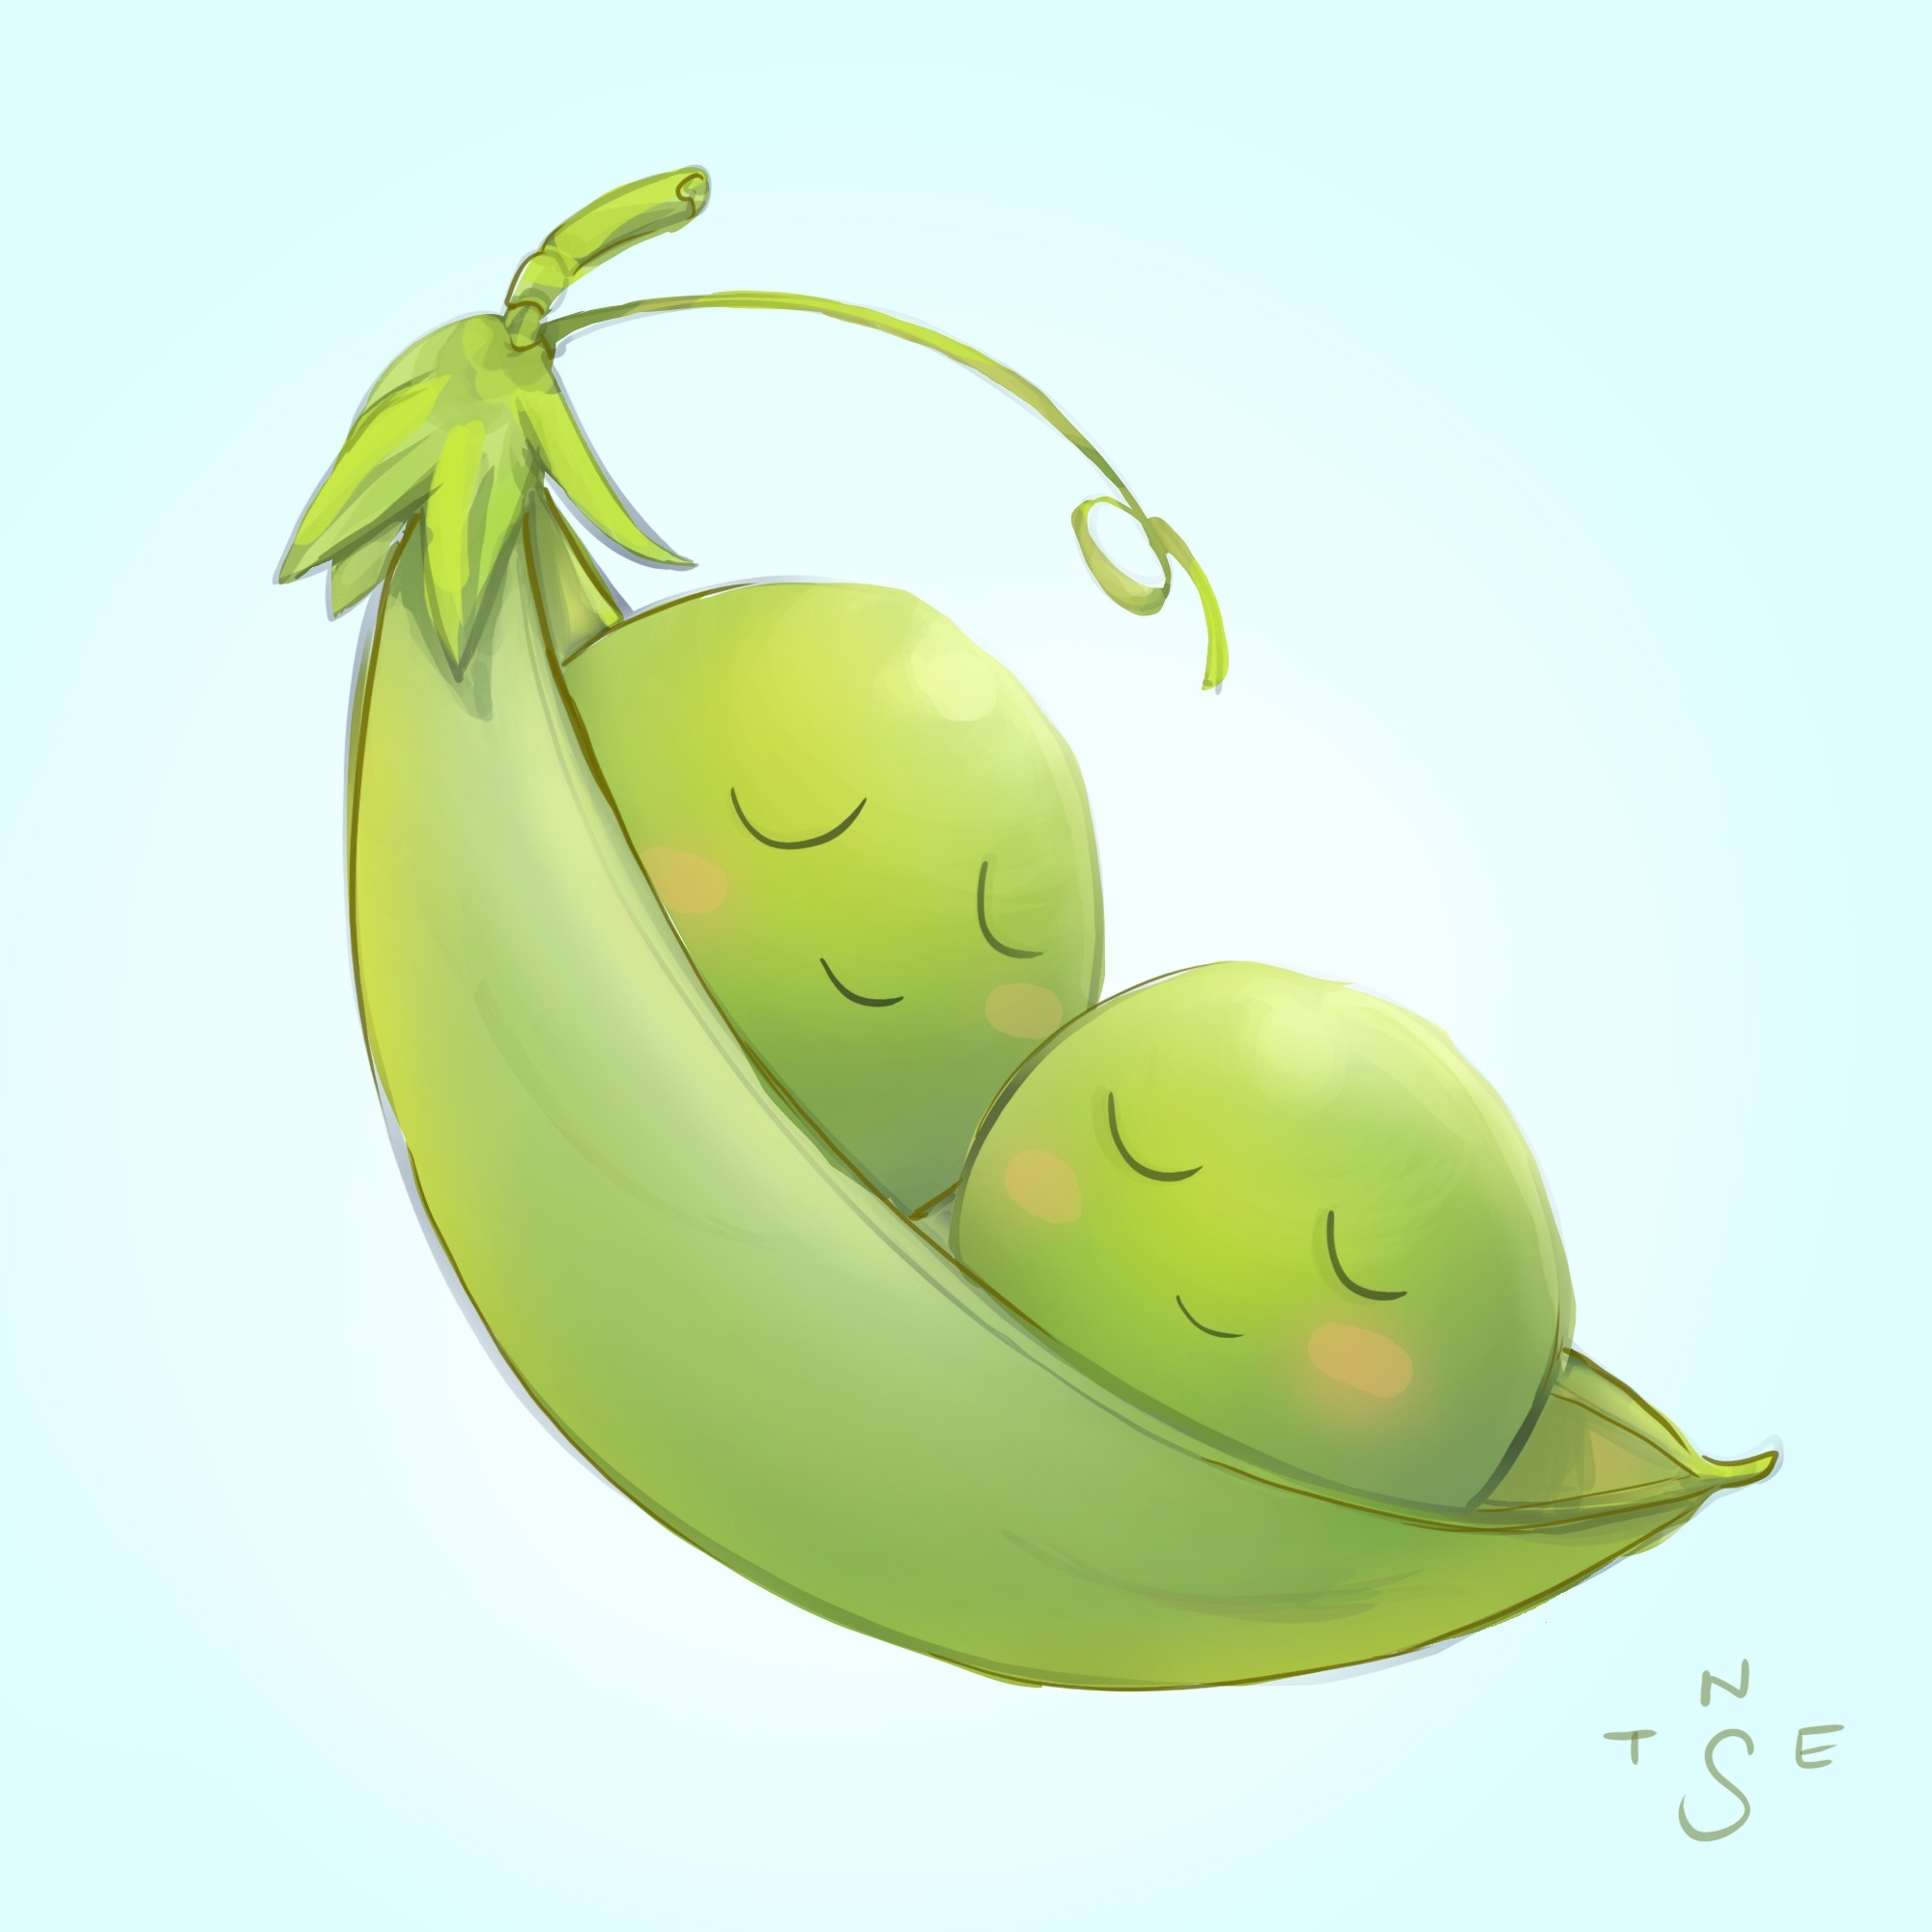 Timelapse Painting: 2 Peas in a Pod